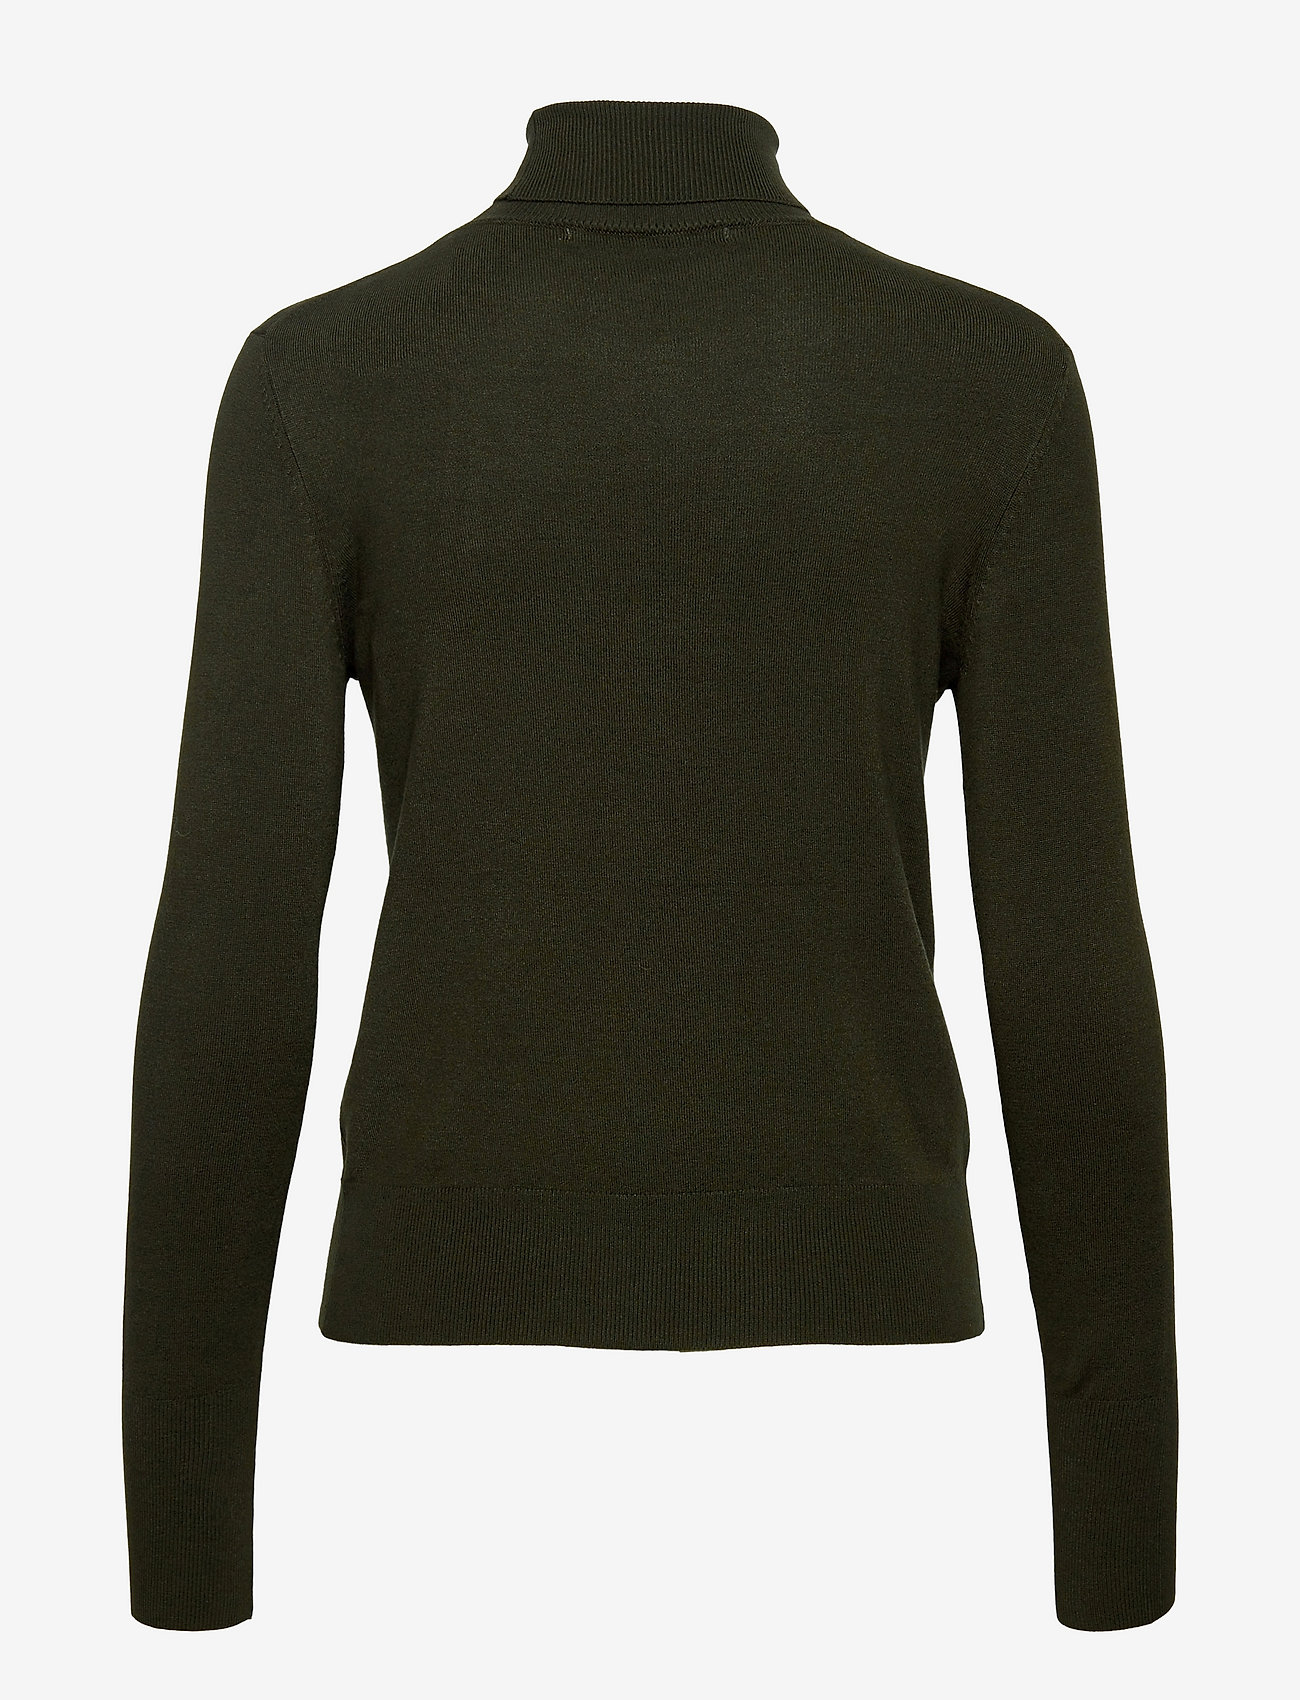 ONLY - ONLVENICE L/S ROLLNECK PULLOVER KNT - t-shirt & tops - rosin - 1